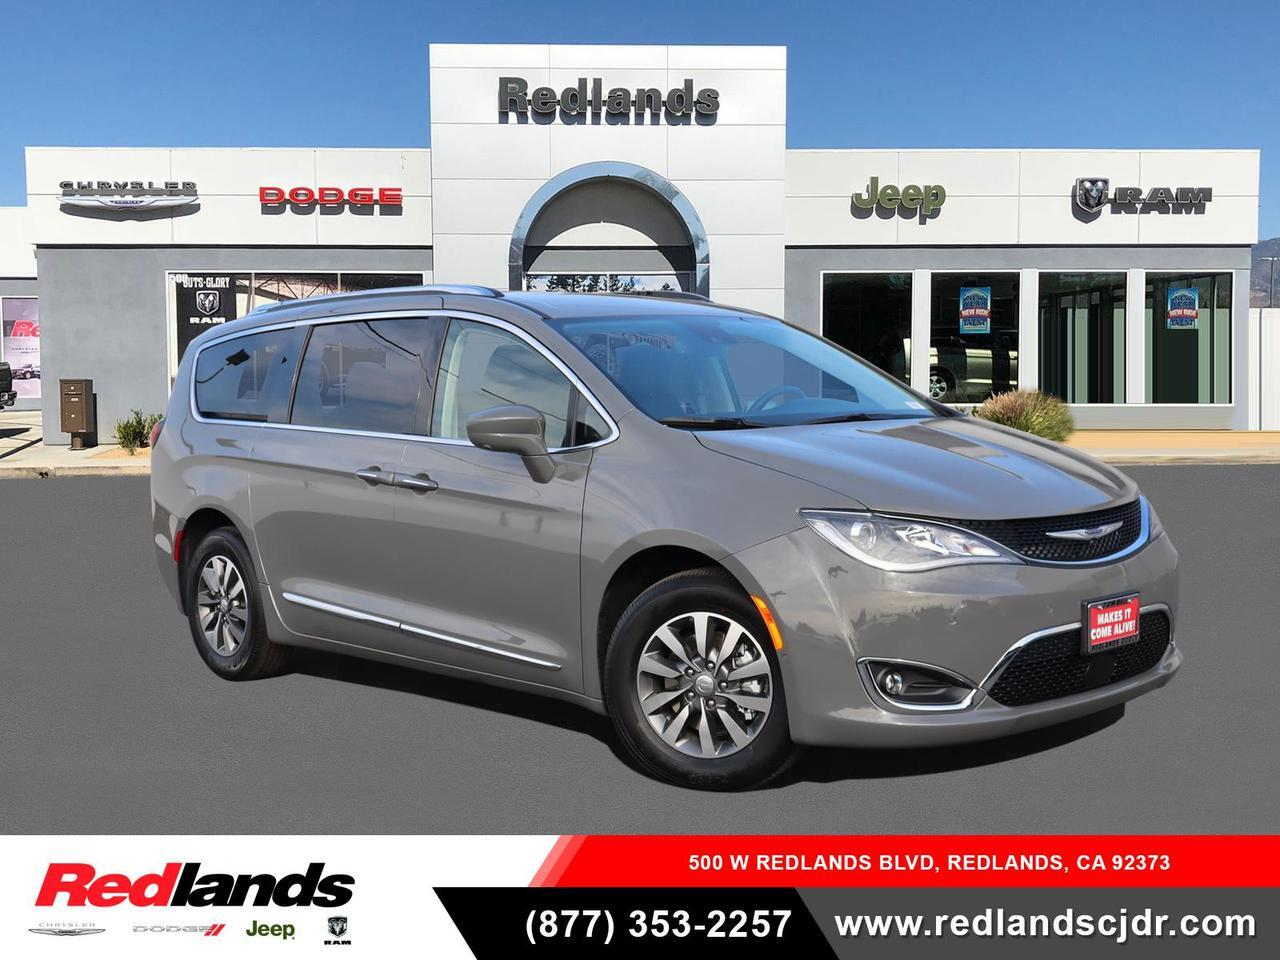 2020 Chrysler Pacifica TOURING L PLUS Redlands CA